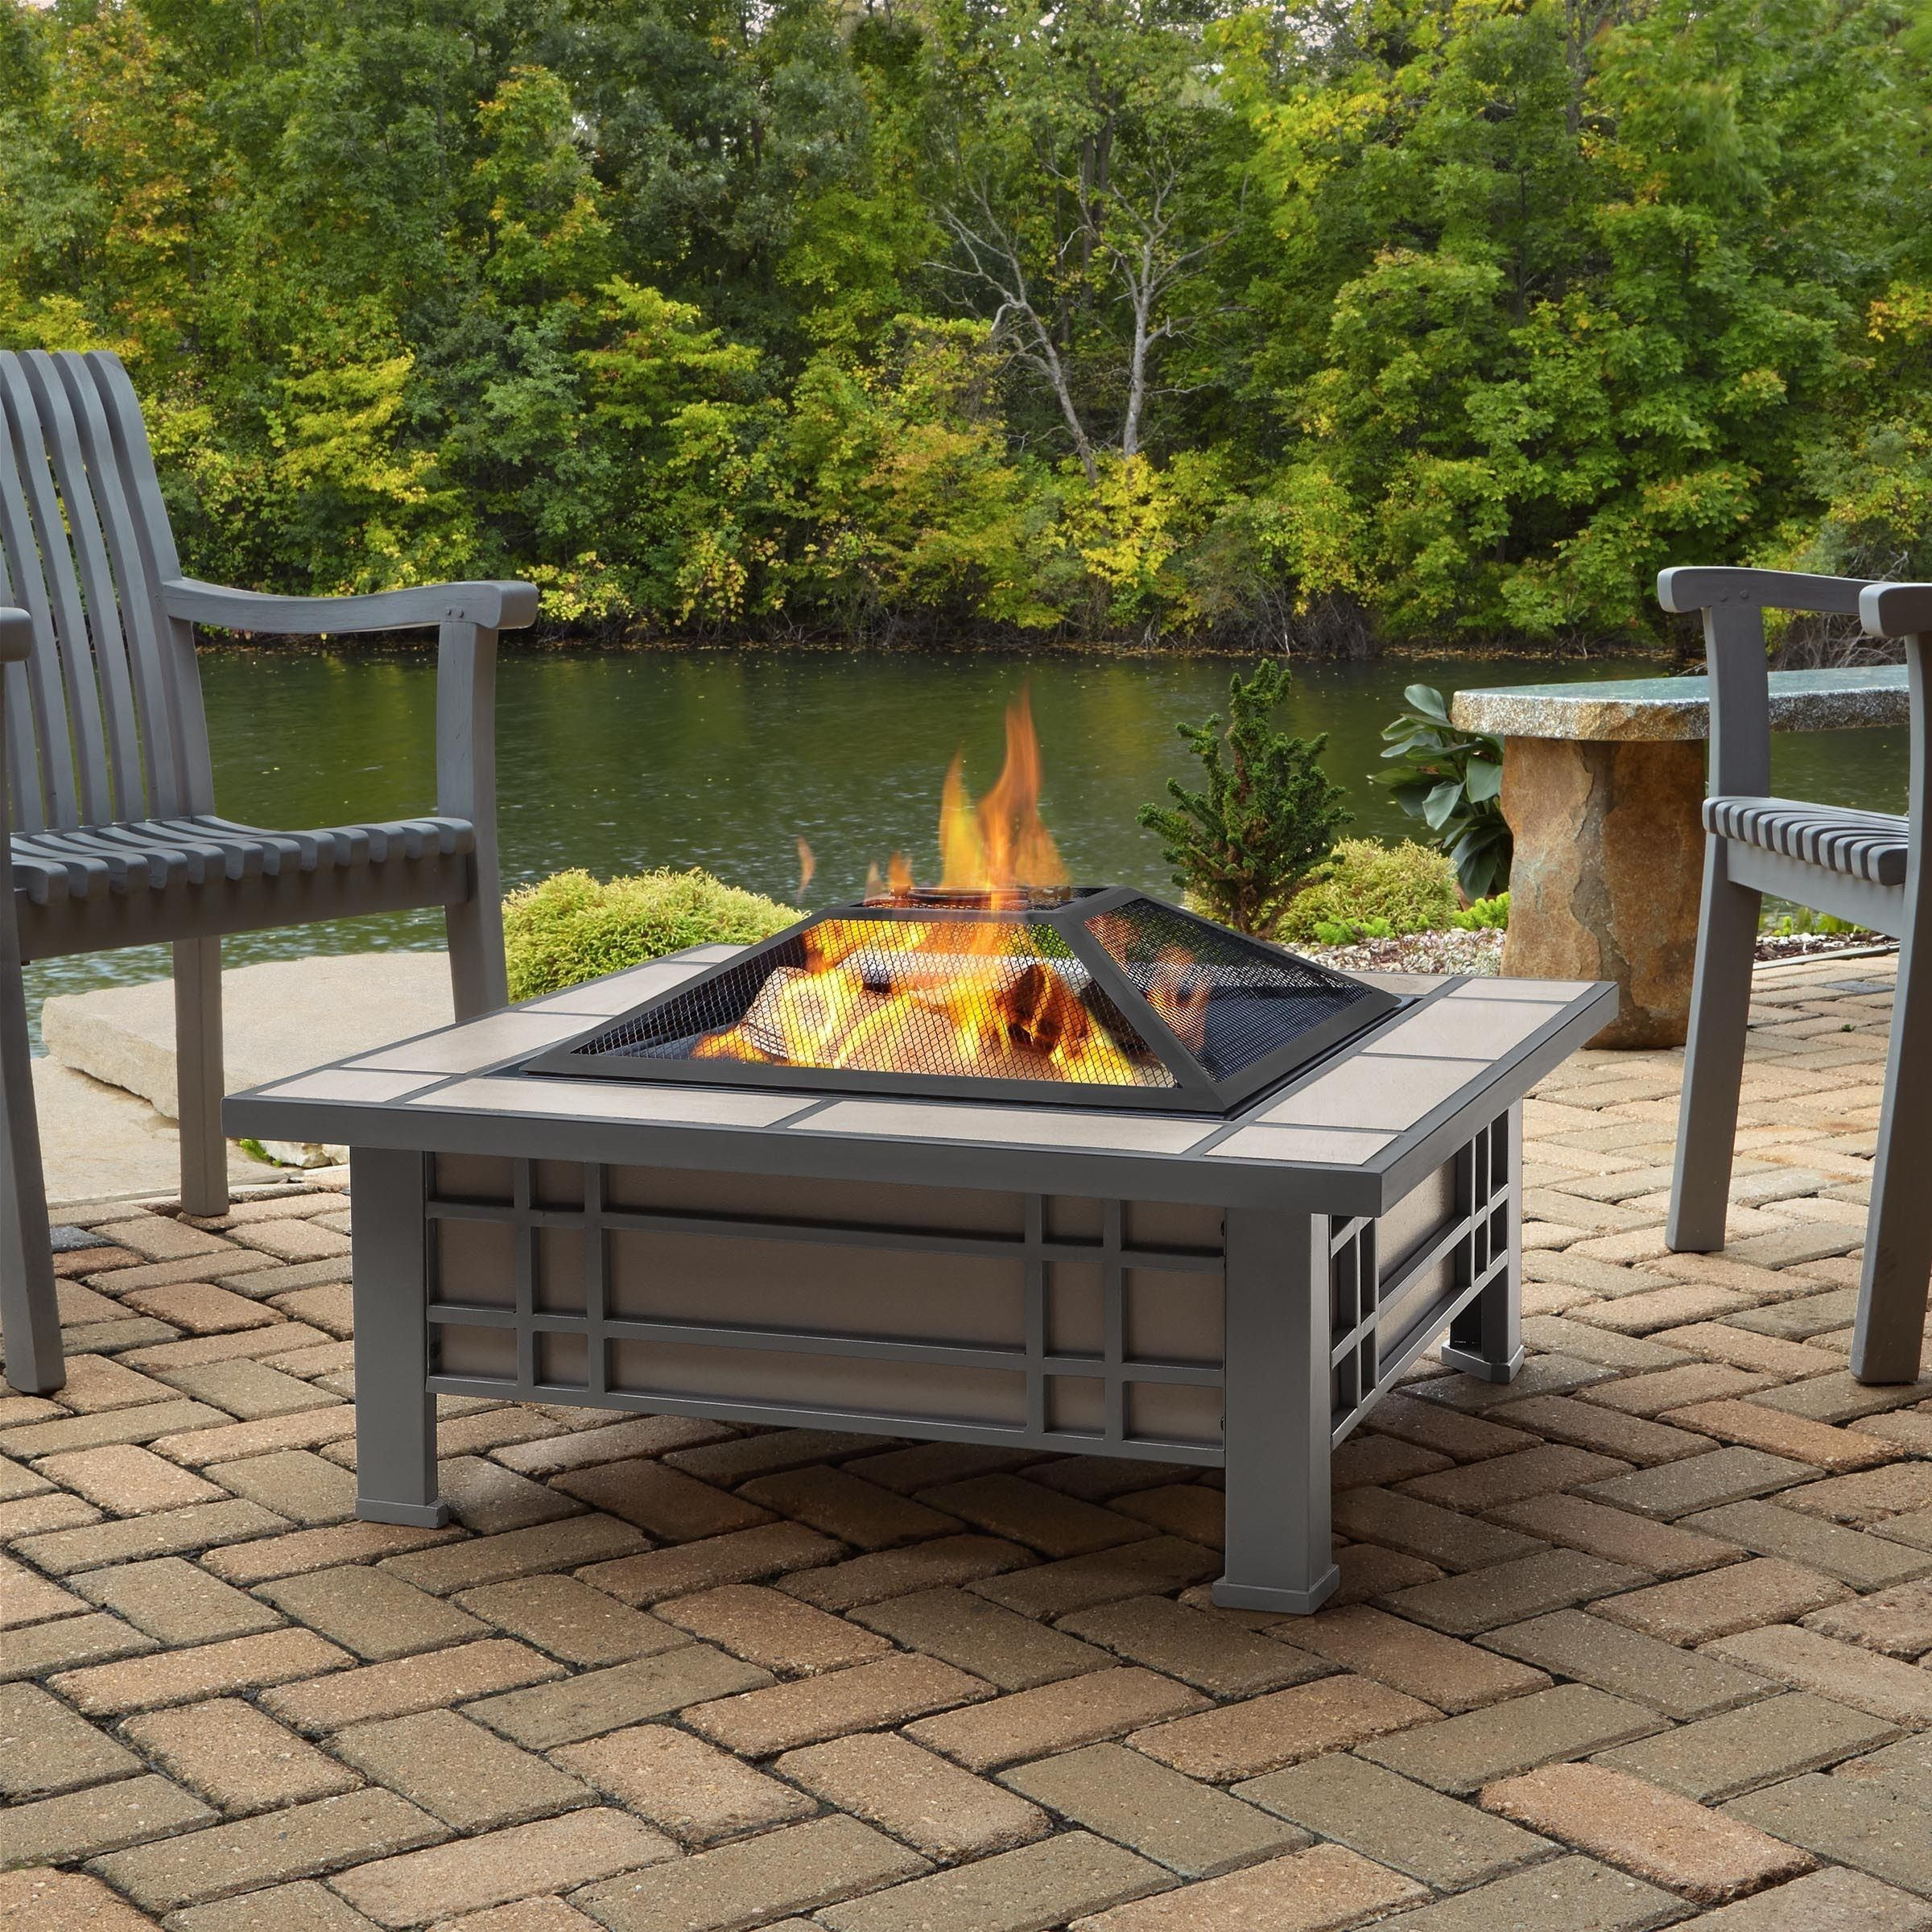 Morrison Cream Tile Outdoor Wood Burning Fire Pit by Real